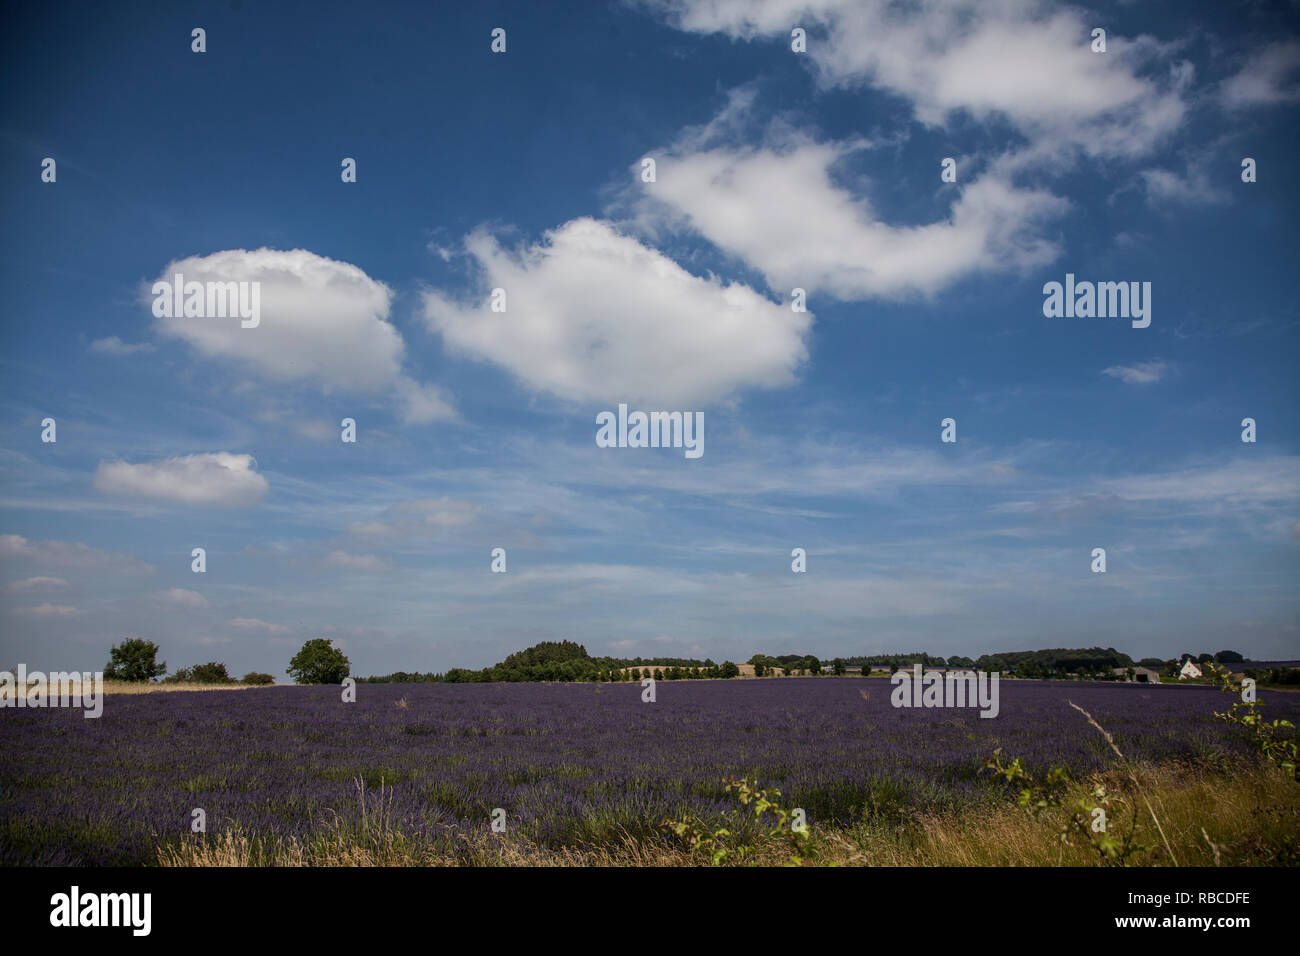 Lavender Field on a summers day with a bright blue sky and white fluffy clouds in an English summer - Stock Image